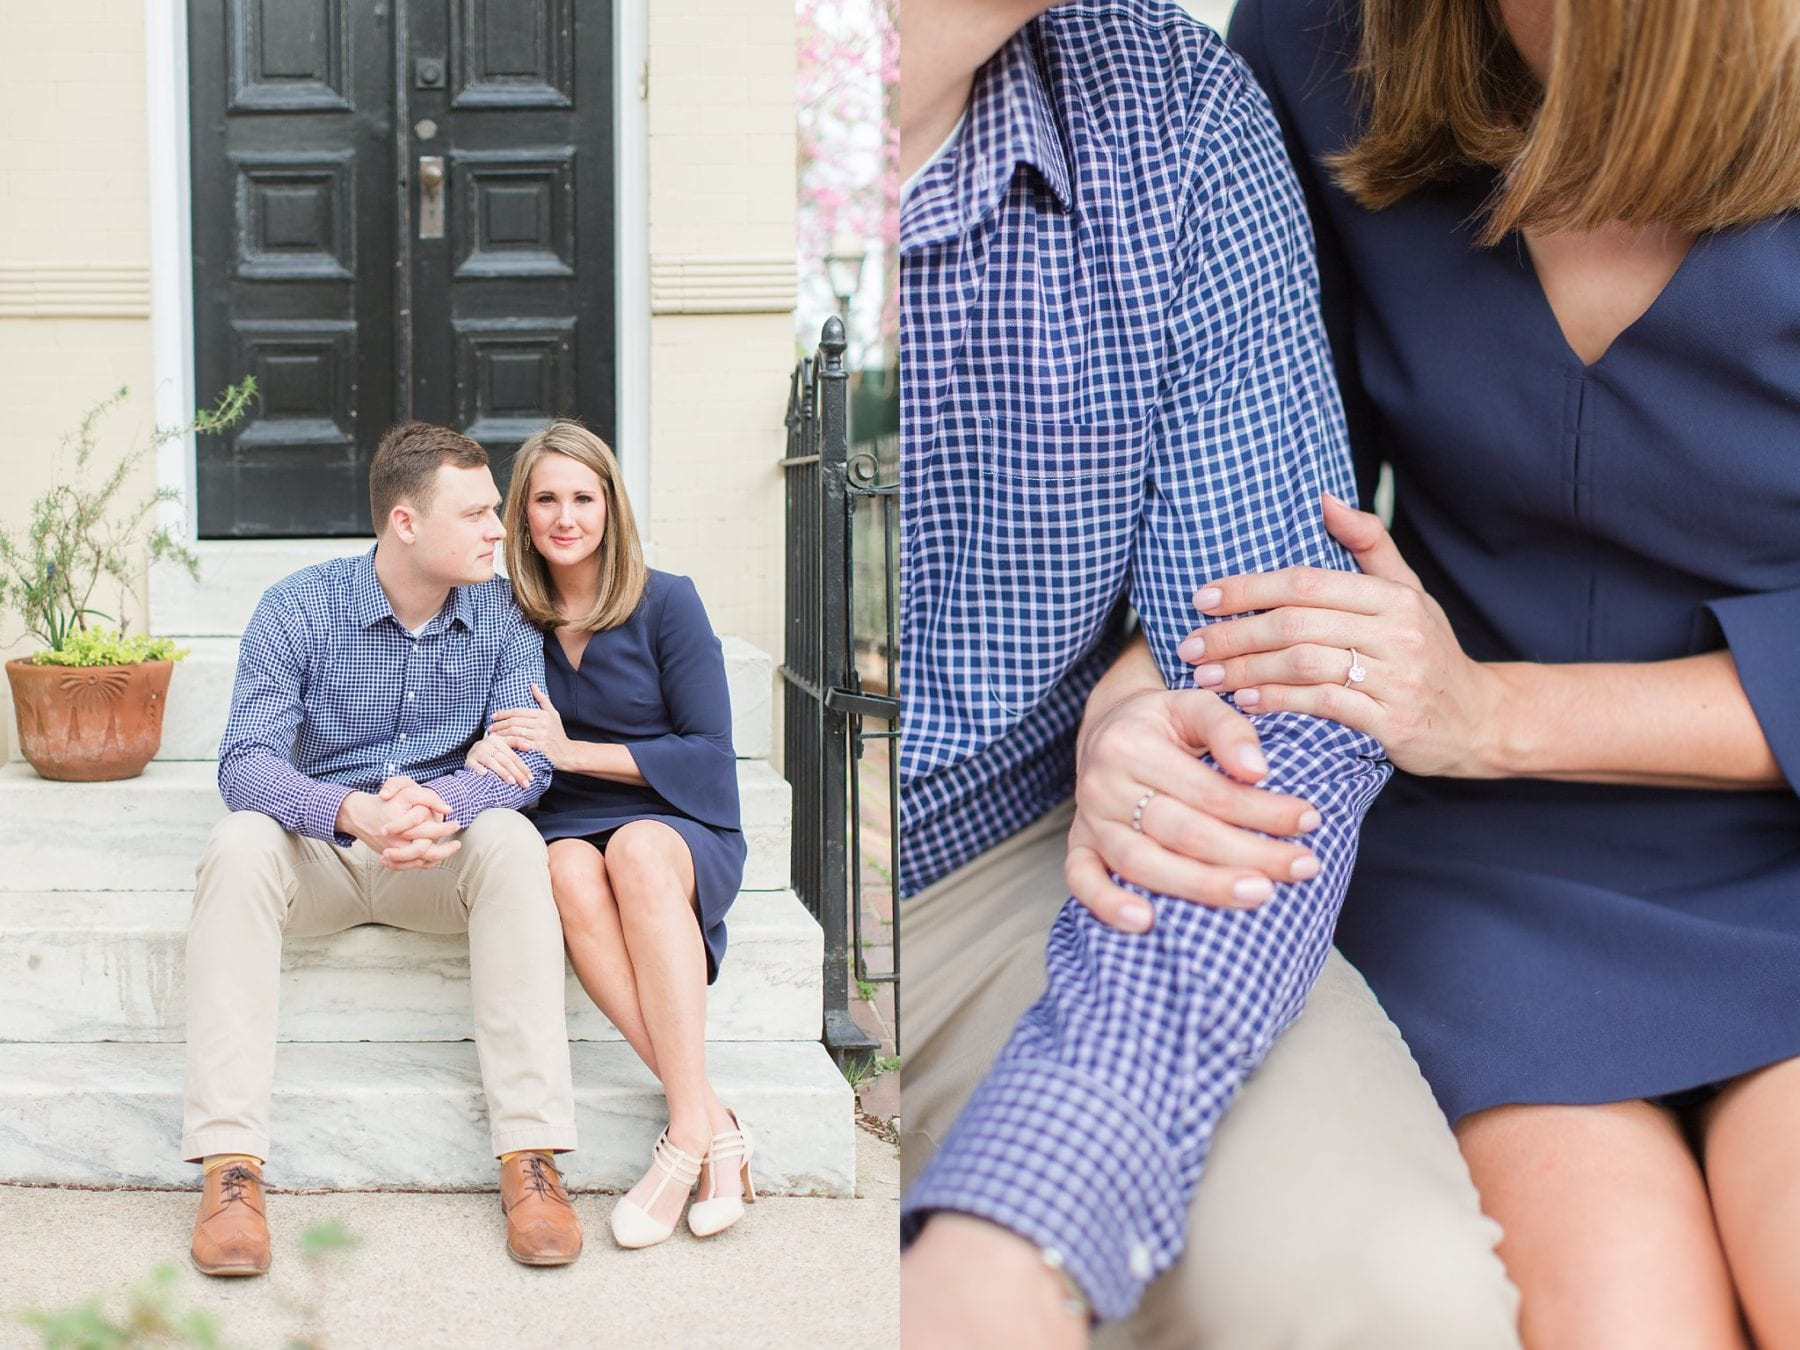 Springtime Old Town Alexandria Engagement Session Matt & Maxie Megan Kelsey Photography-113.jpg